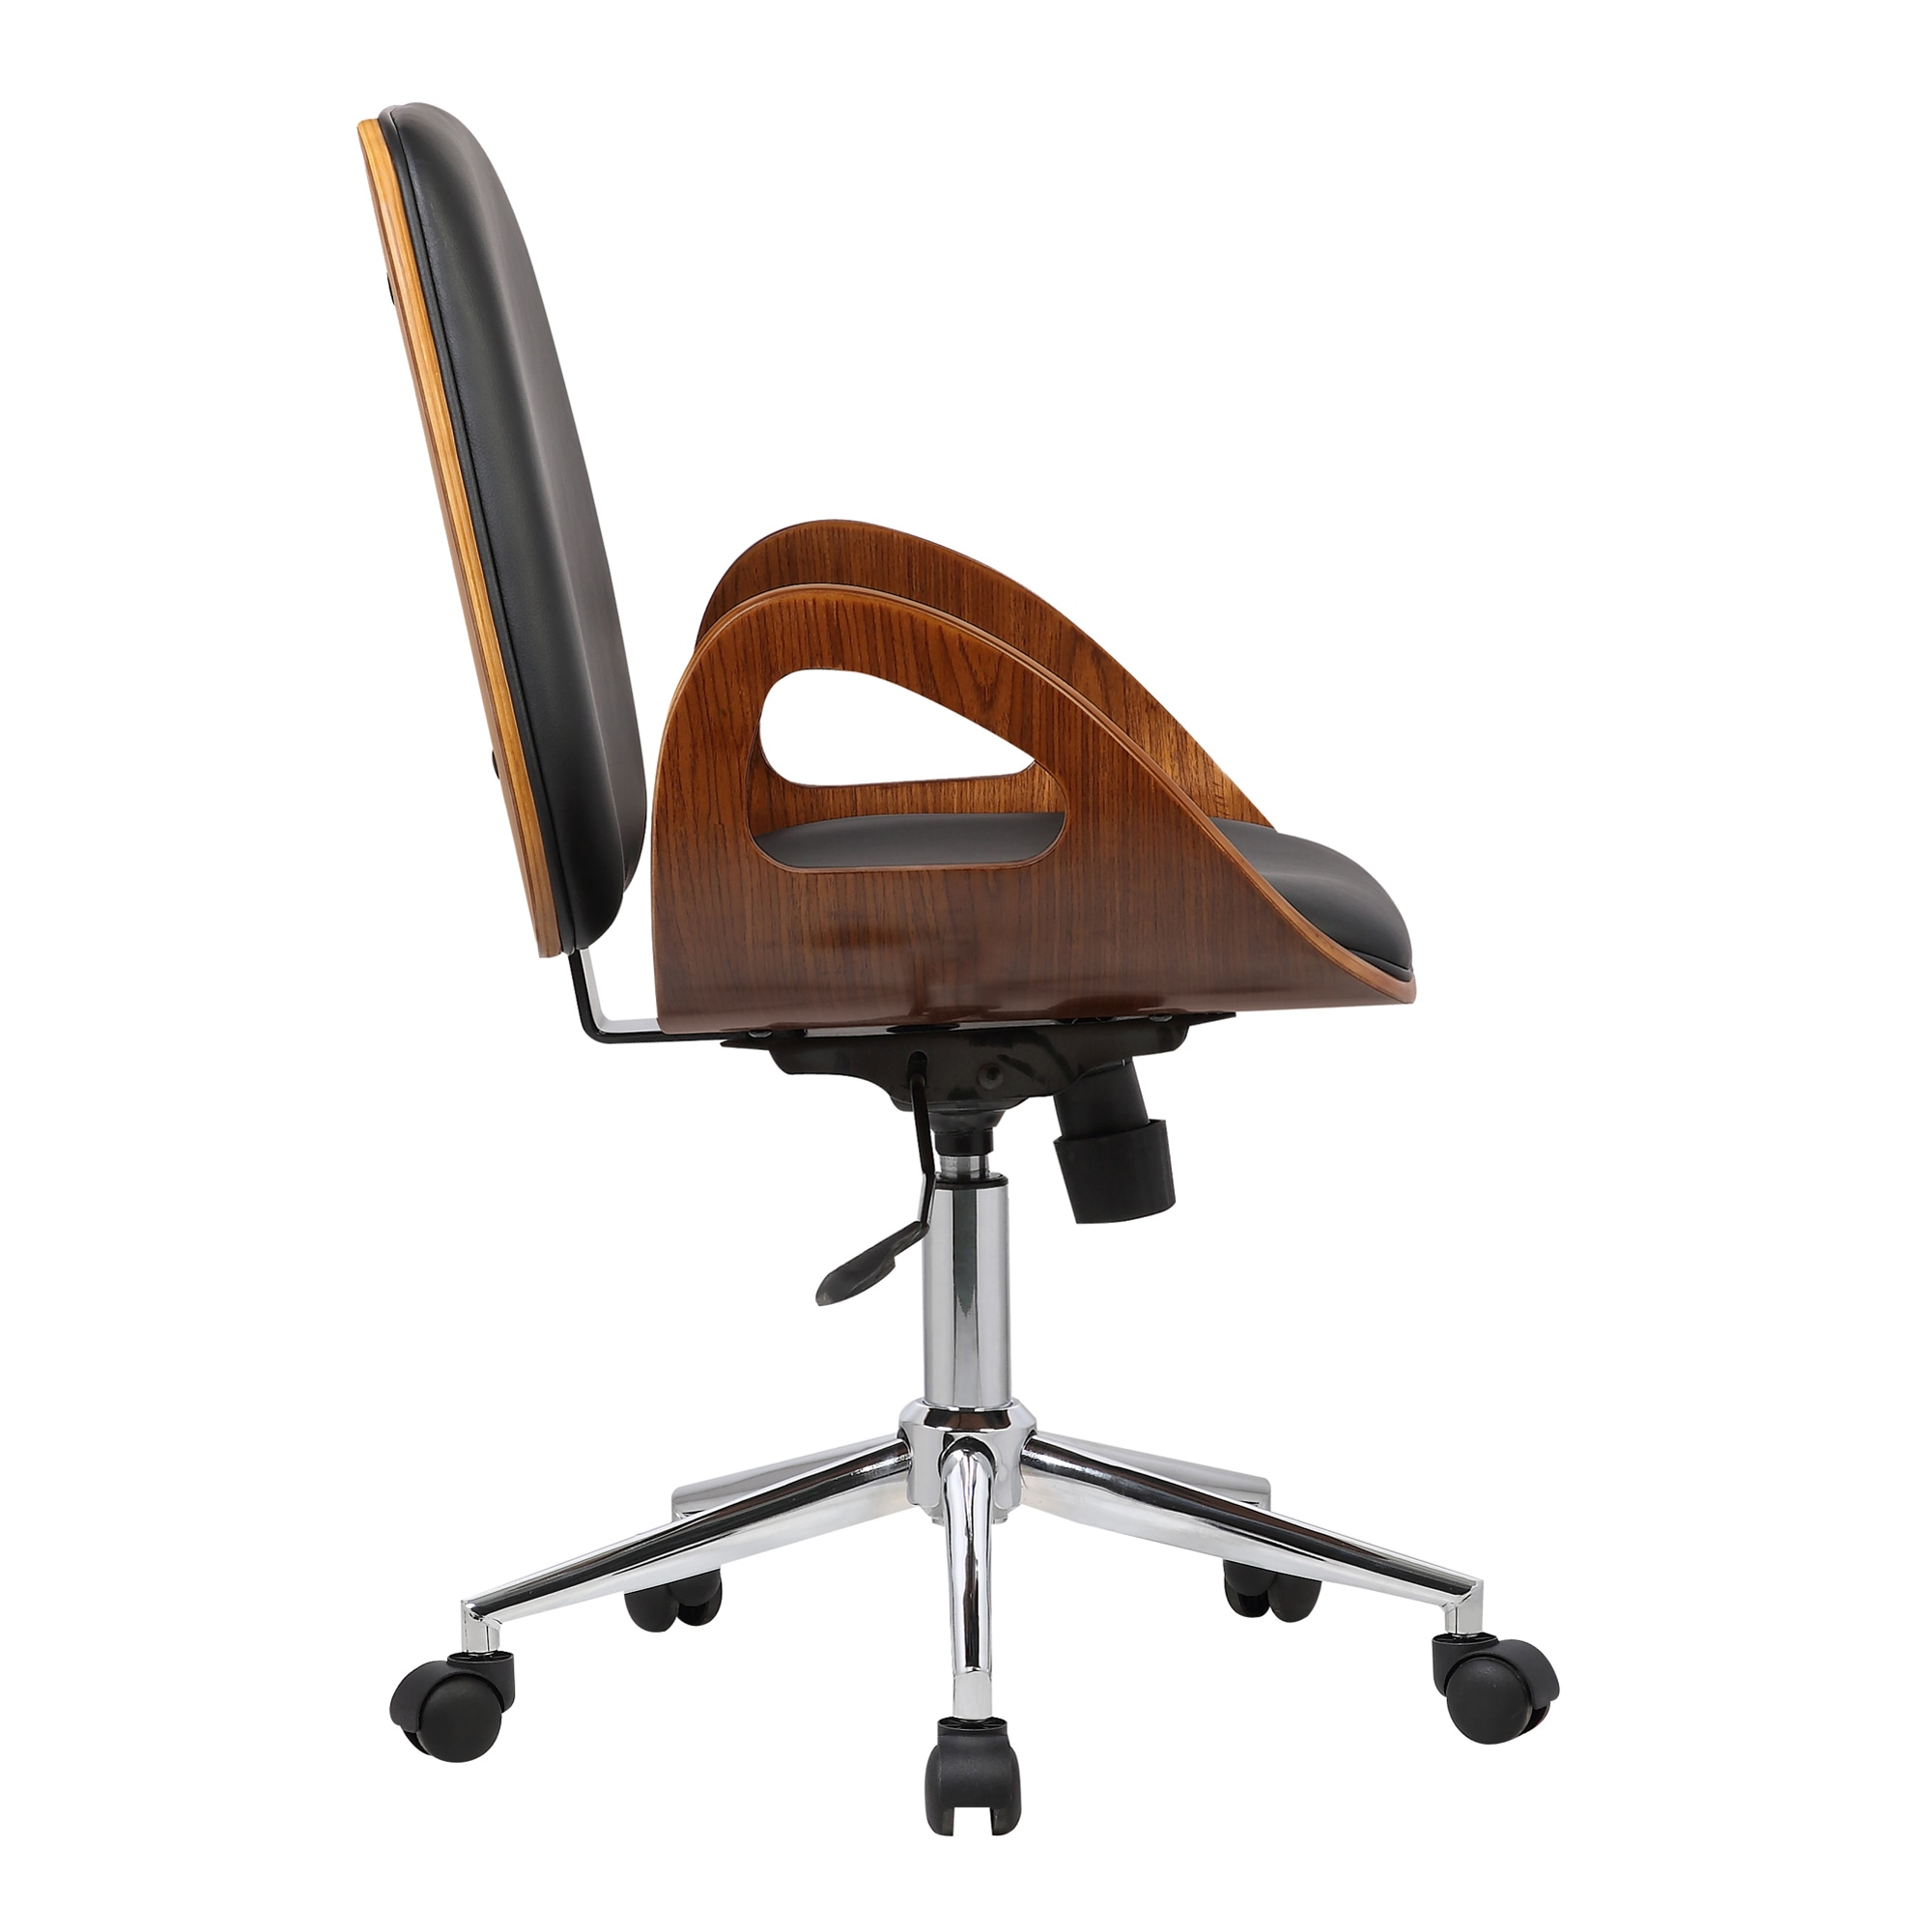 117d2658a8 Shop Armen Living Wallace Mid-Century Office Chair in Chrome finish with Black  Faux Leather and Walnut Veneer Back - Free Shipping Today - Overstock - ...